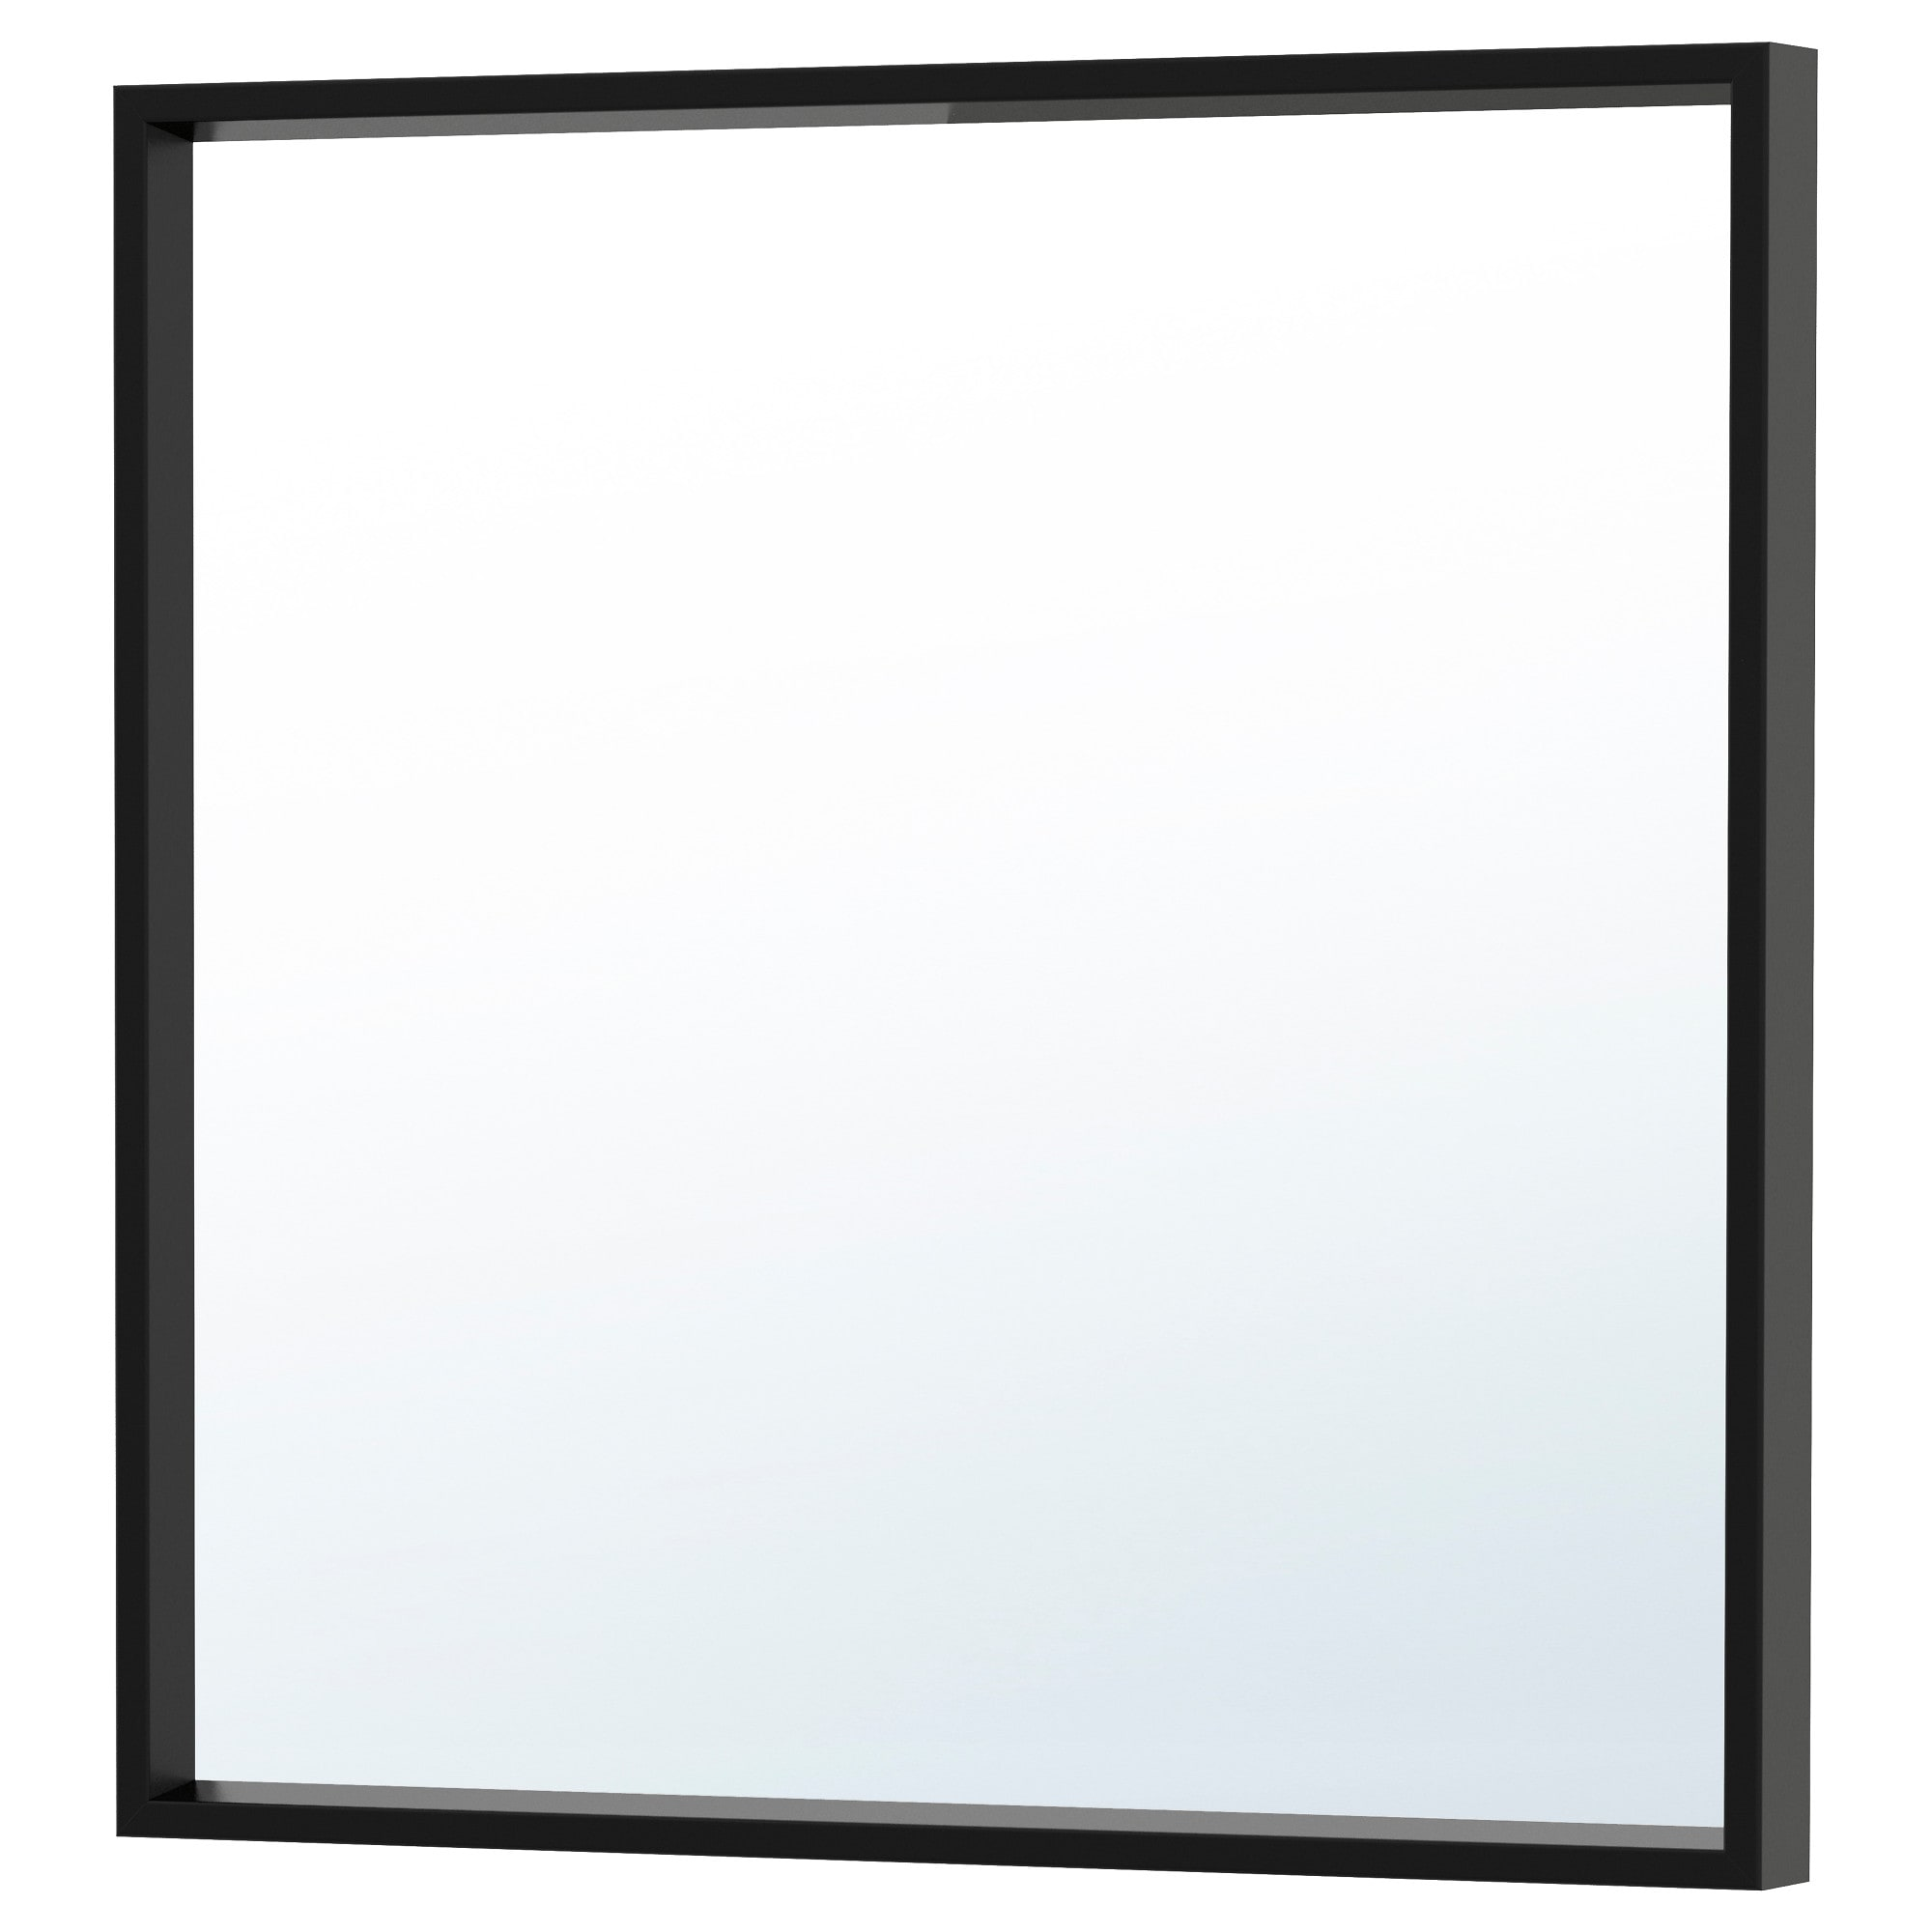 Wall mirrors ikea nissedal mirror black width 25 58 height 25 5 amipublicfo Image collections